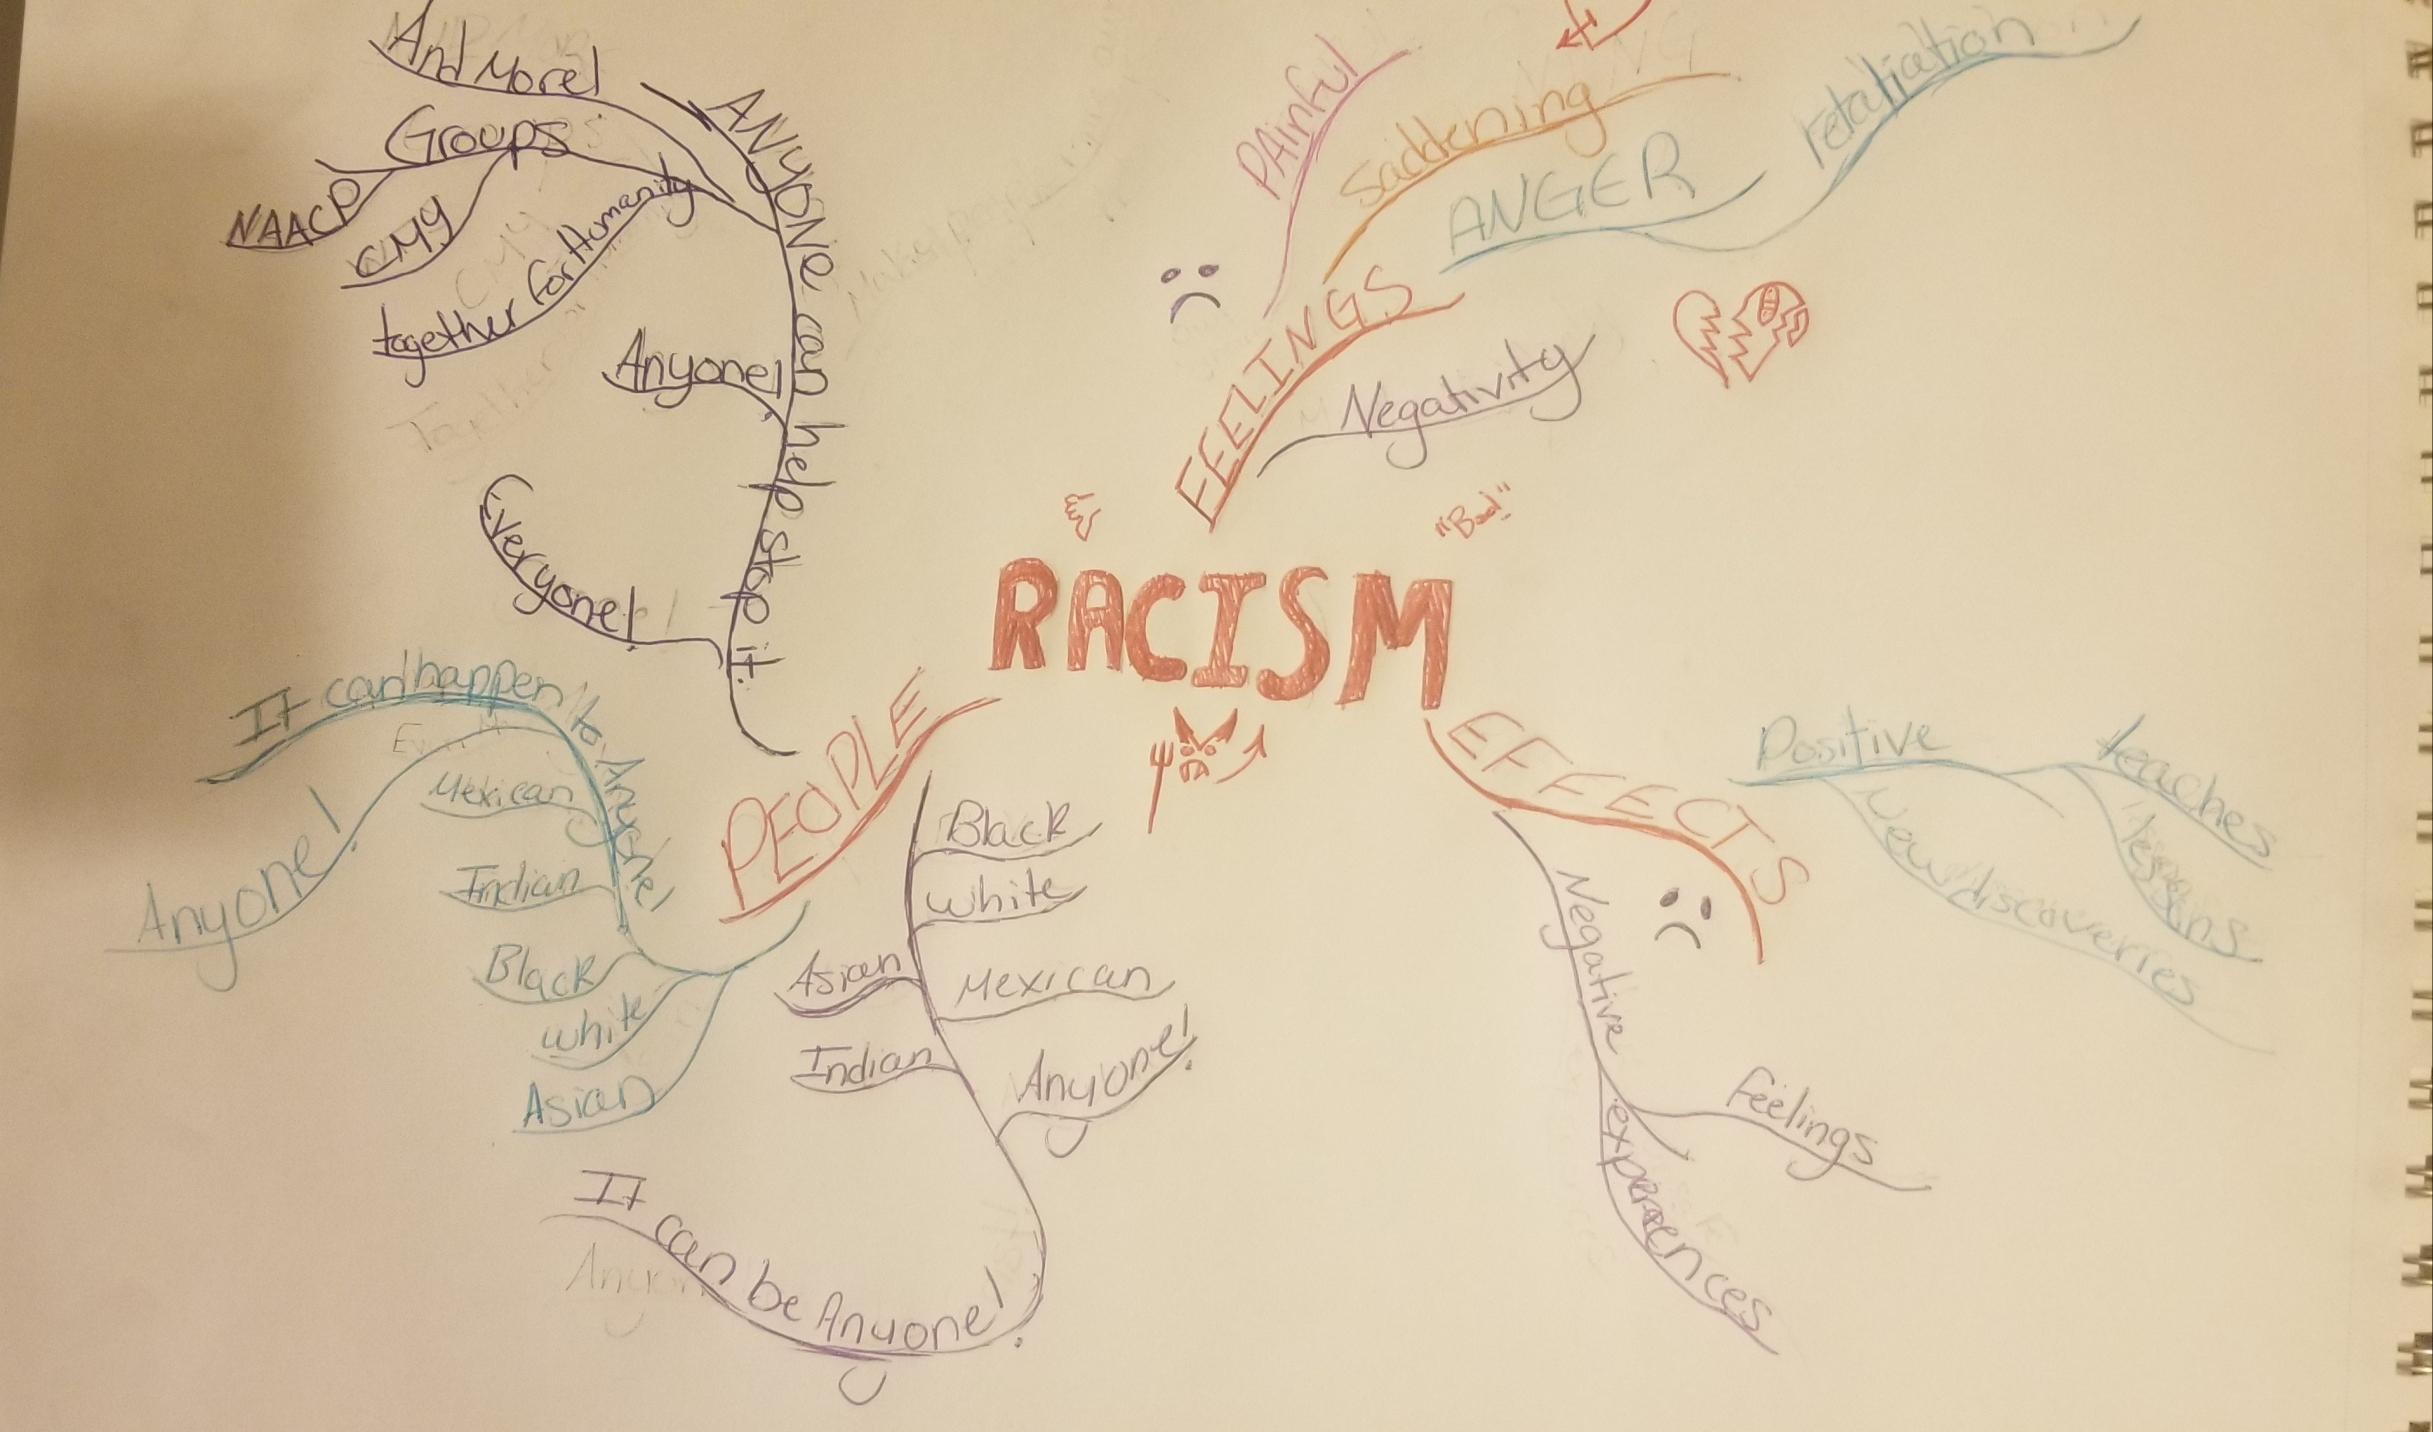 #4. Mind Mapping Racism!